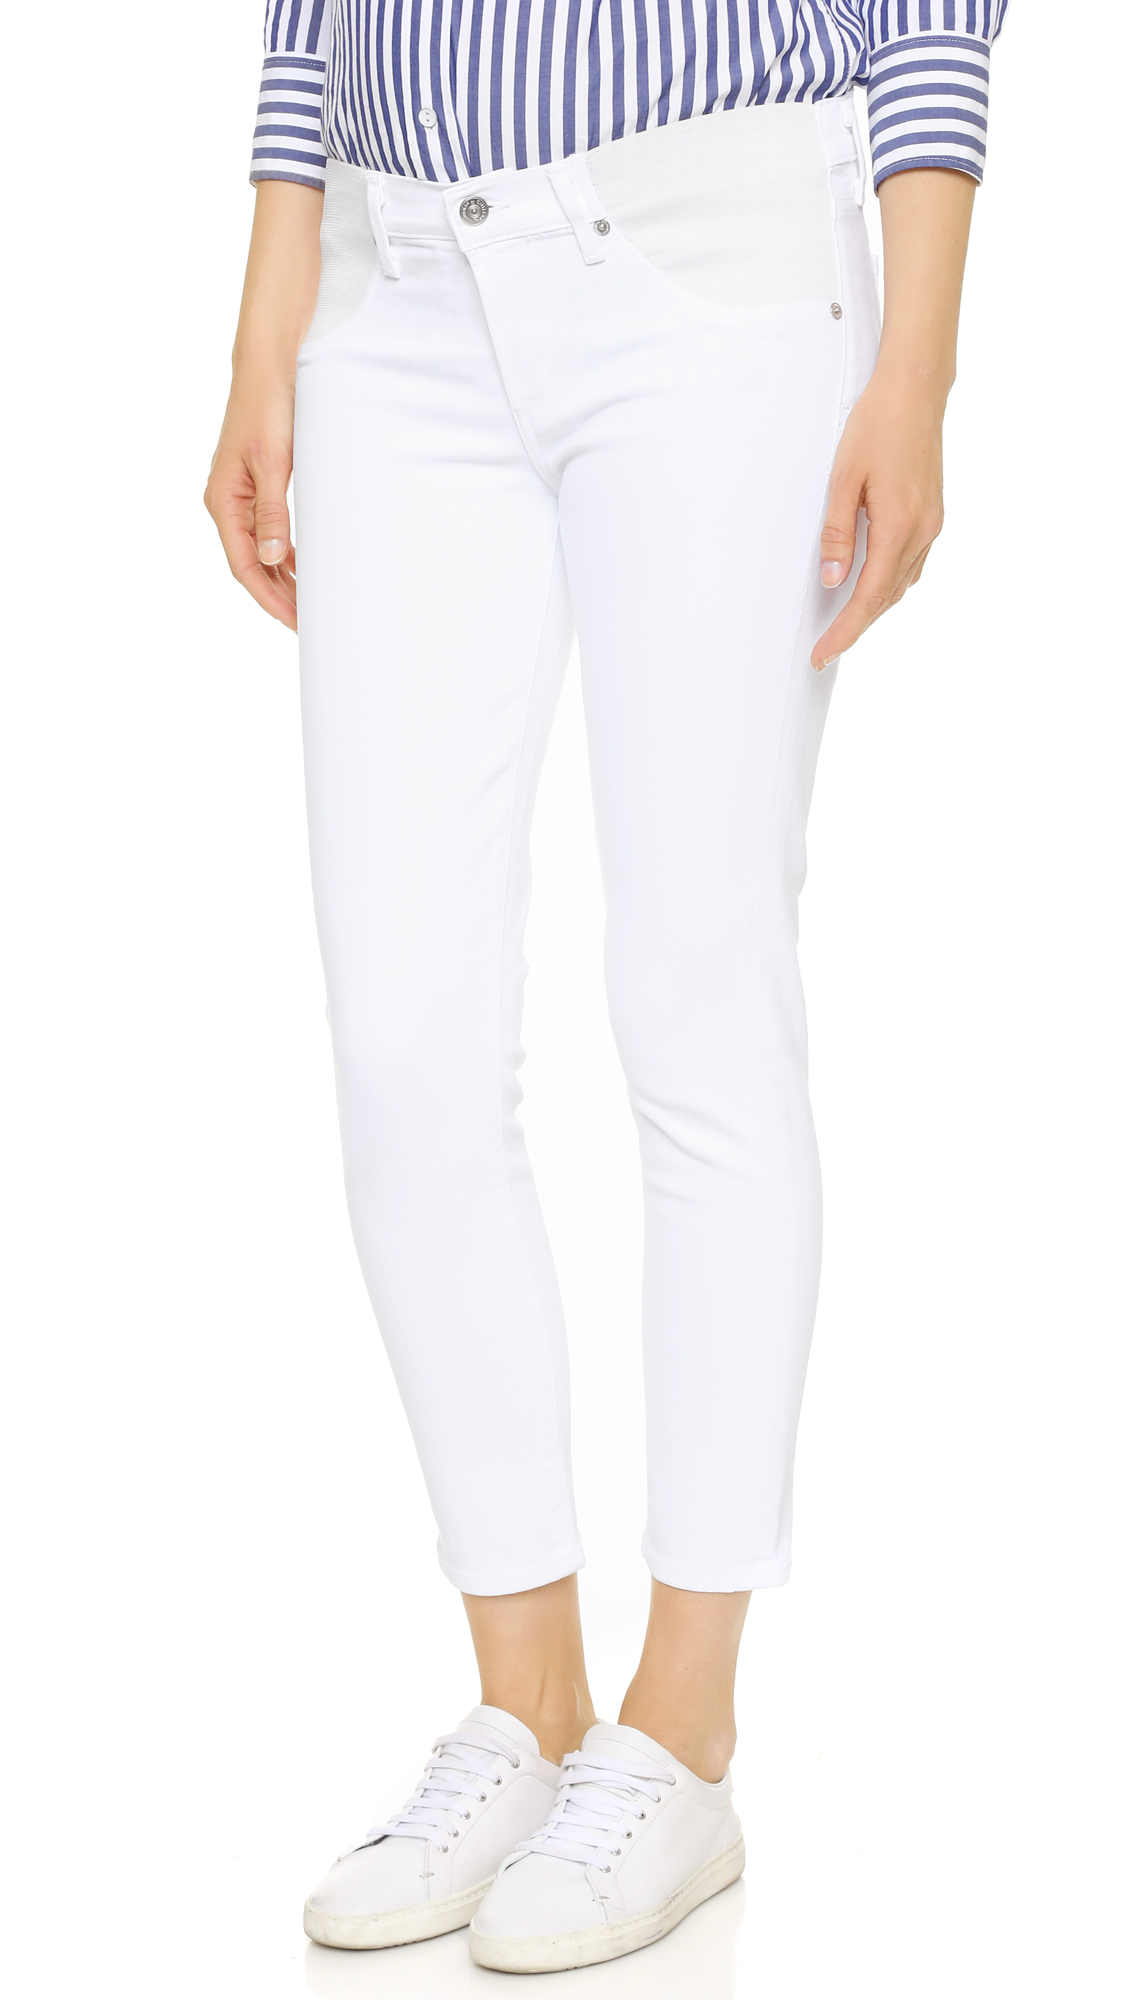 Citizens of Humanity Avedon Below the Belly Ultra Ankle Skinny Jeans In Optic White